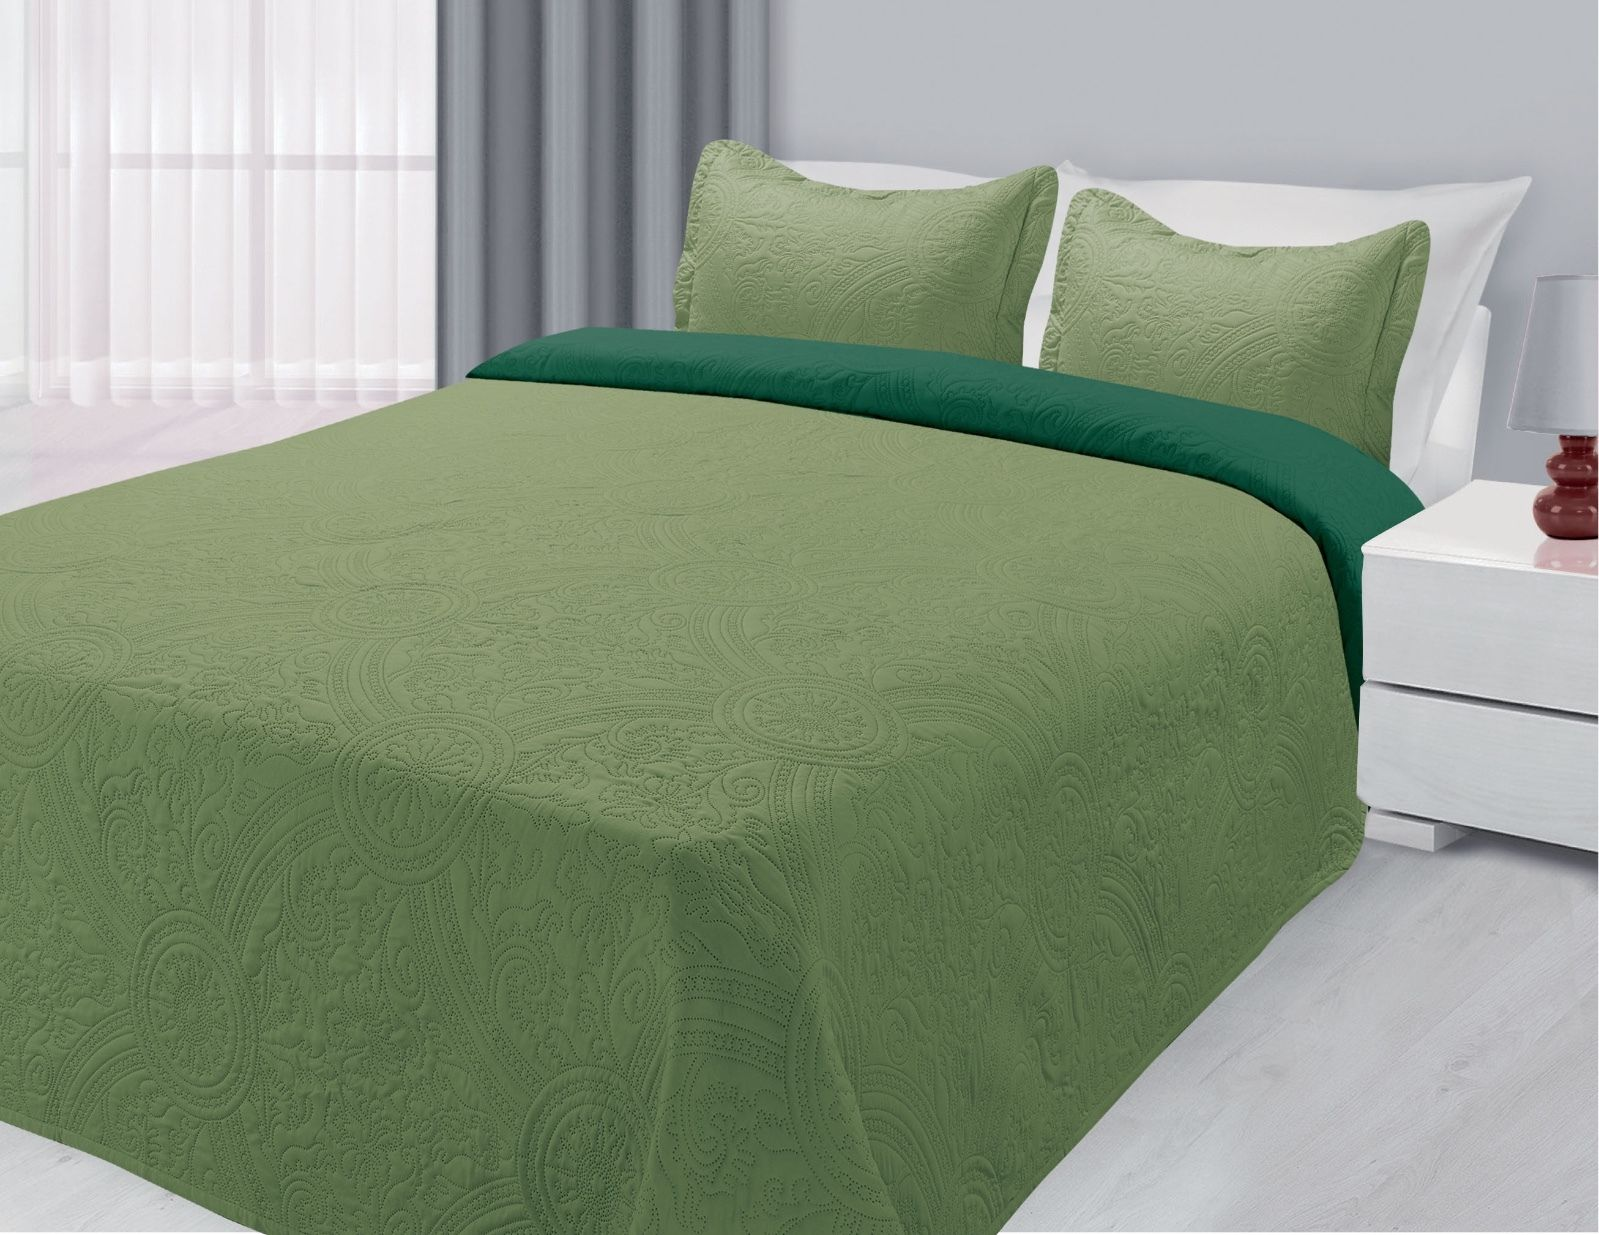 Click here to buy 3-Piece Reversible Quilted Bedspread Coverlet Sage & Hunter Twin Size.